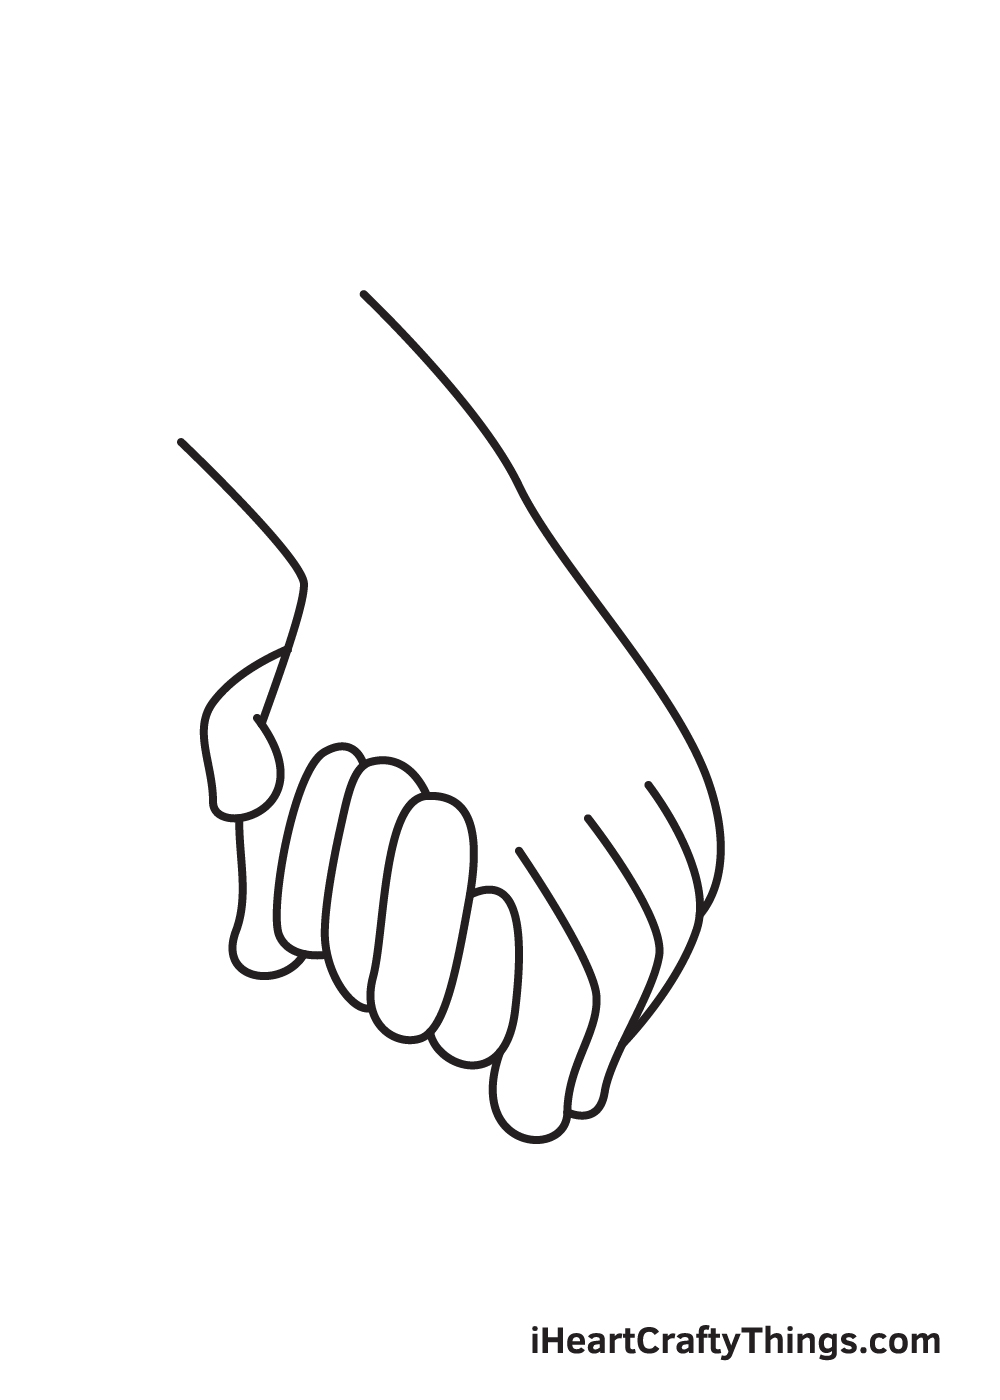 holding hands drawing step 7